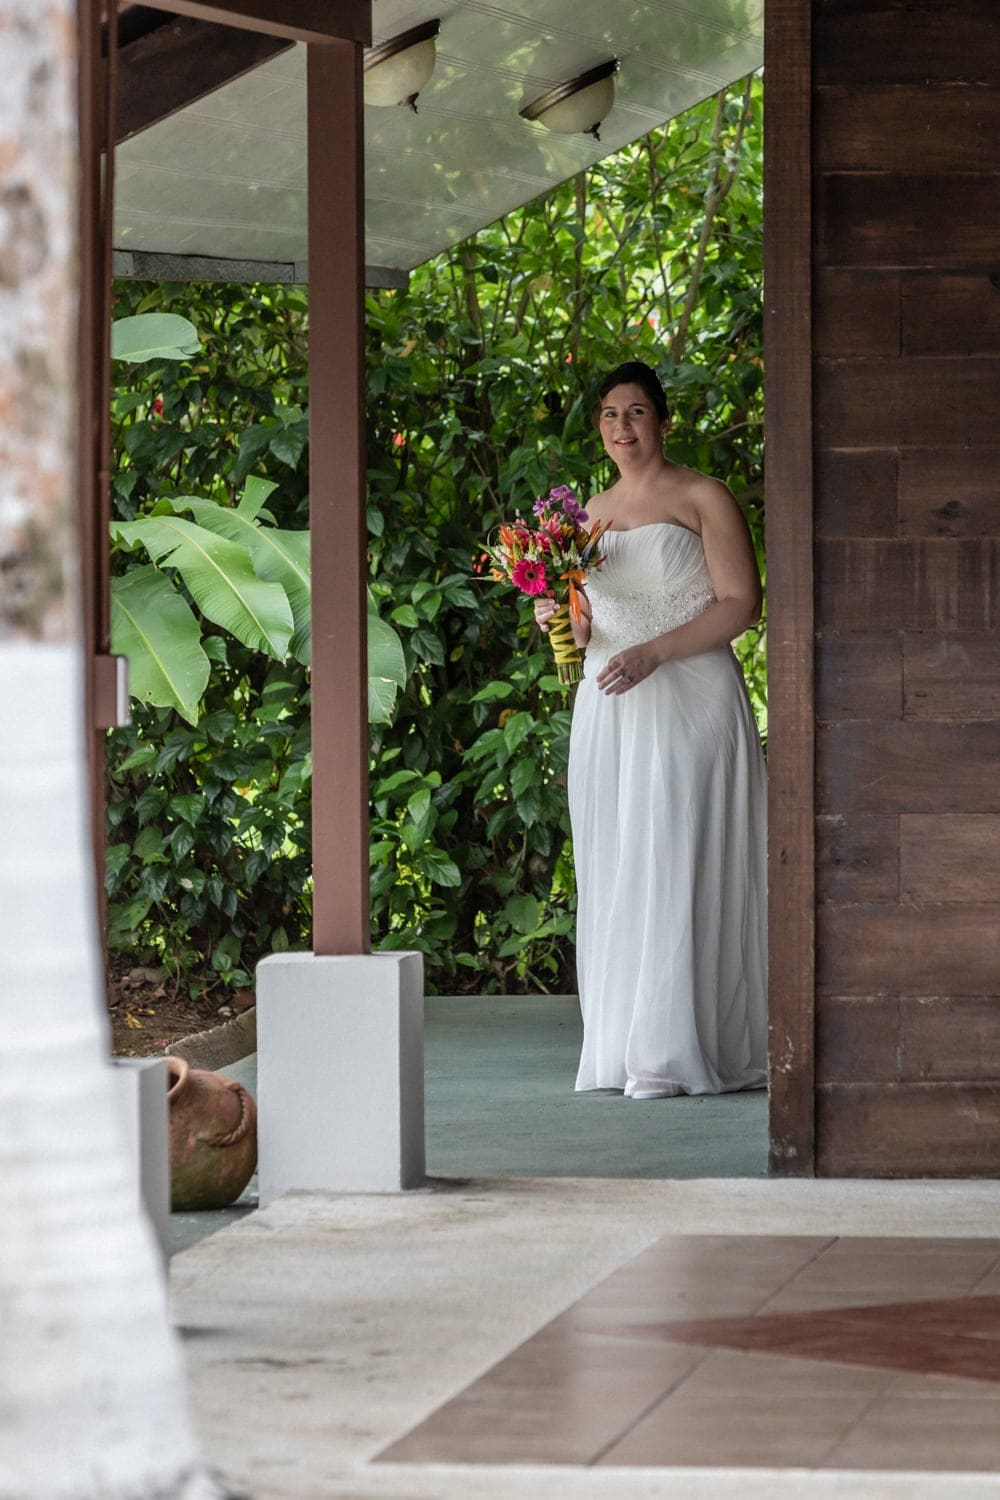 Bride with floral bouquet walks towards groom.